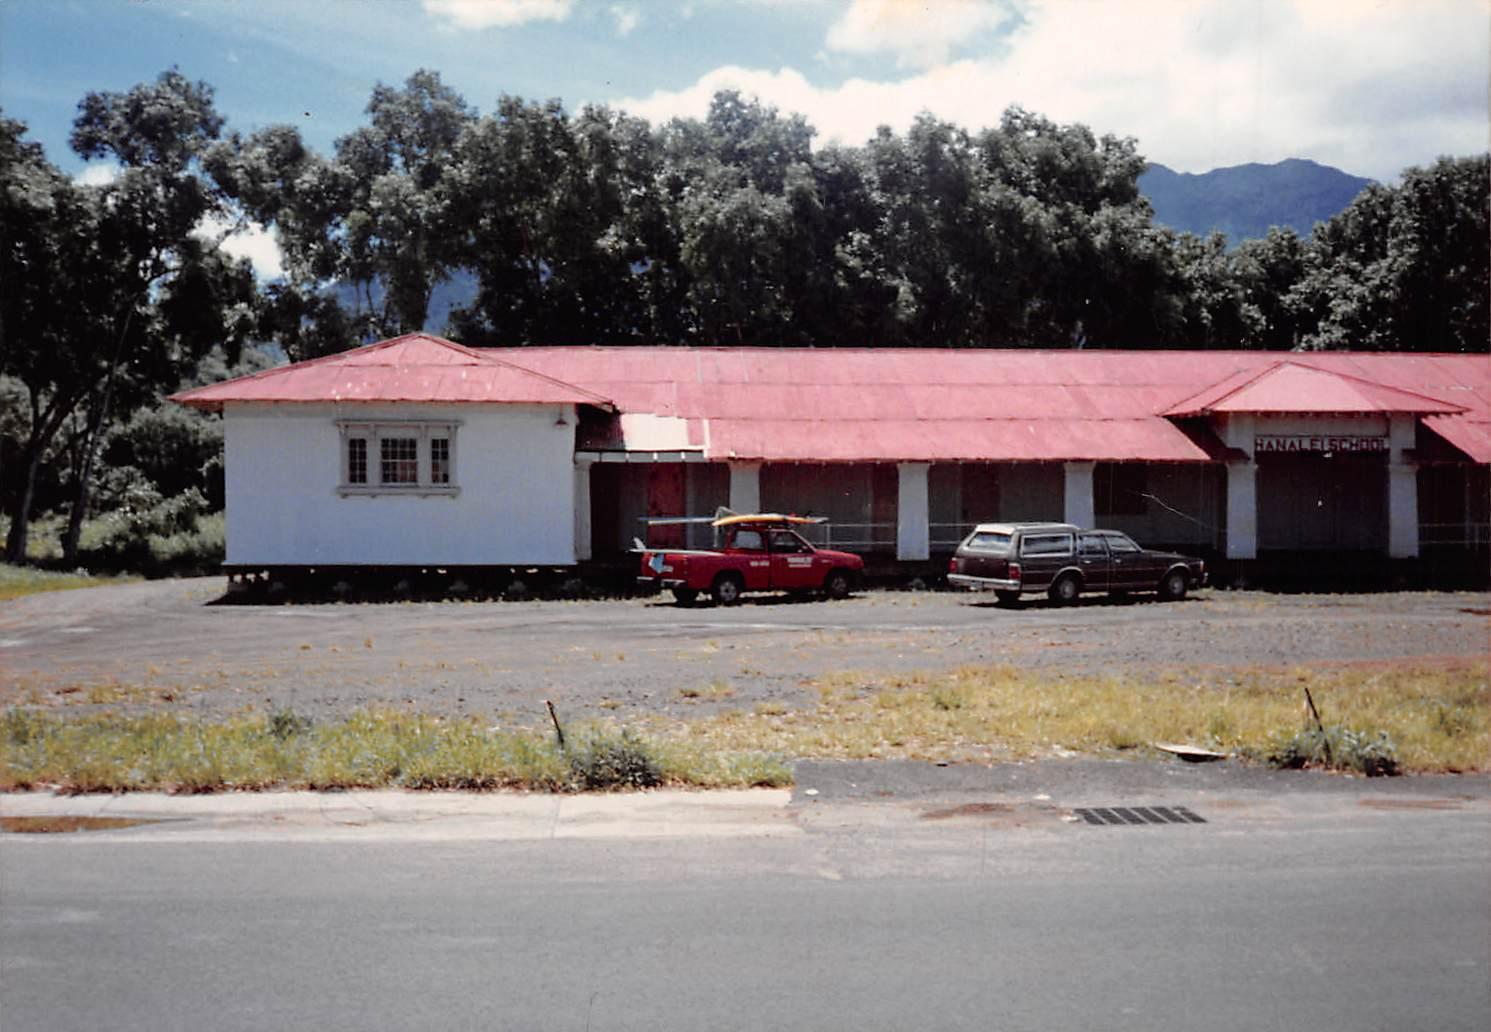 - I was then offered a space in a new shopping center yet to be built. Gaylord Wilcox was making arrangements to move and restore the old Hanalei School building to the center of town. When it was finished in 1989 I opened Hanalei Surf Company and the business finally expanded into its roots- surfing.Photo: Charlie's 1986 red truck in front of what used to be Hanalei School | Circa 1987